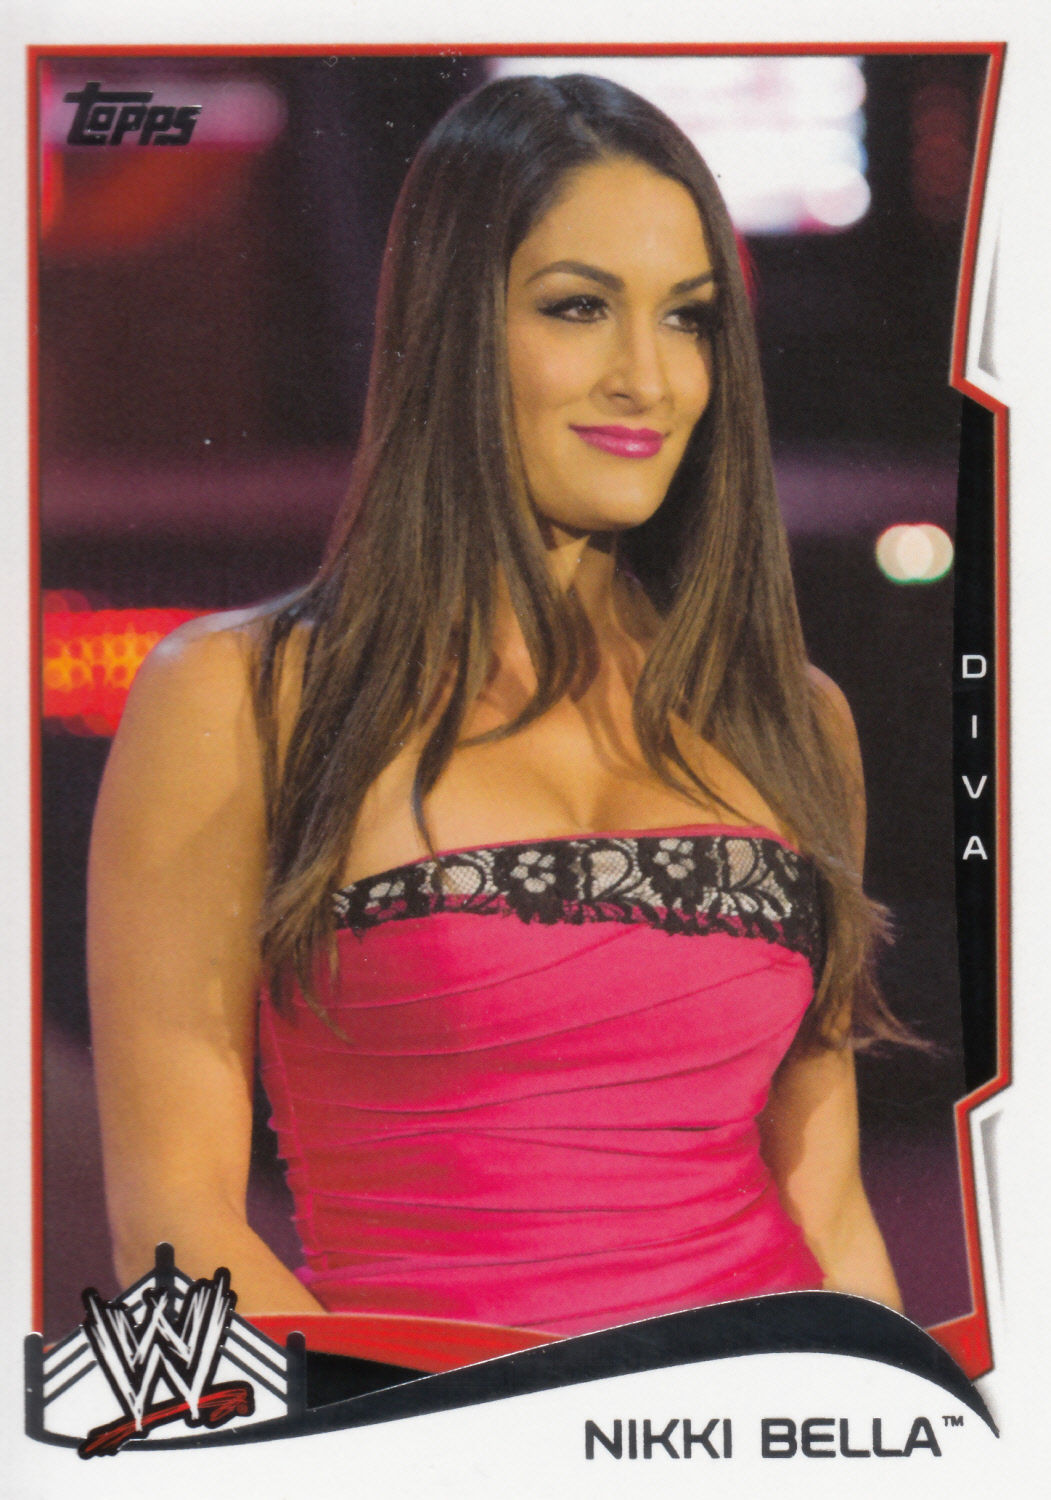 Nikki Bella 2014 Topps WWE Card #35 - Wrestling Cards